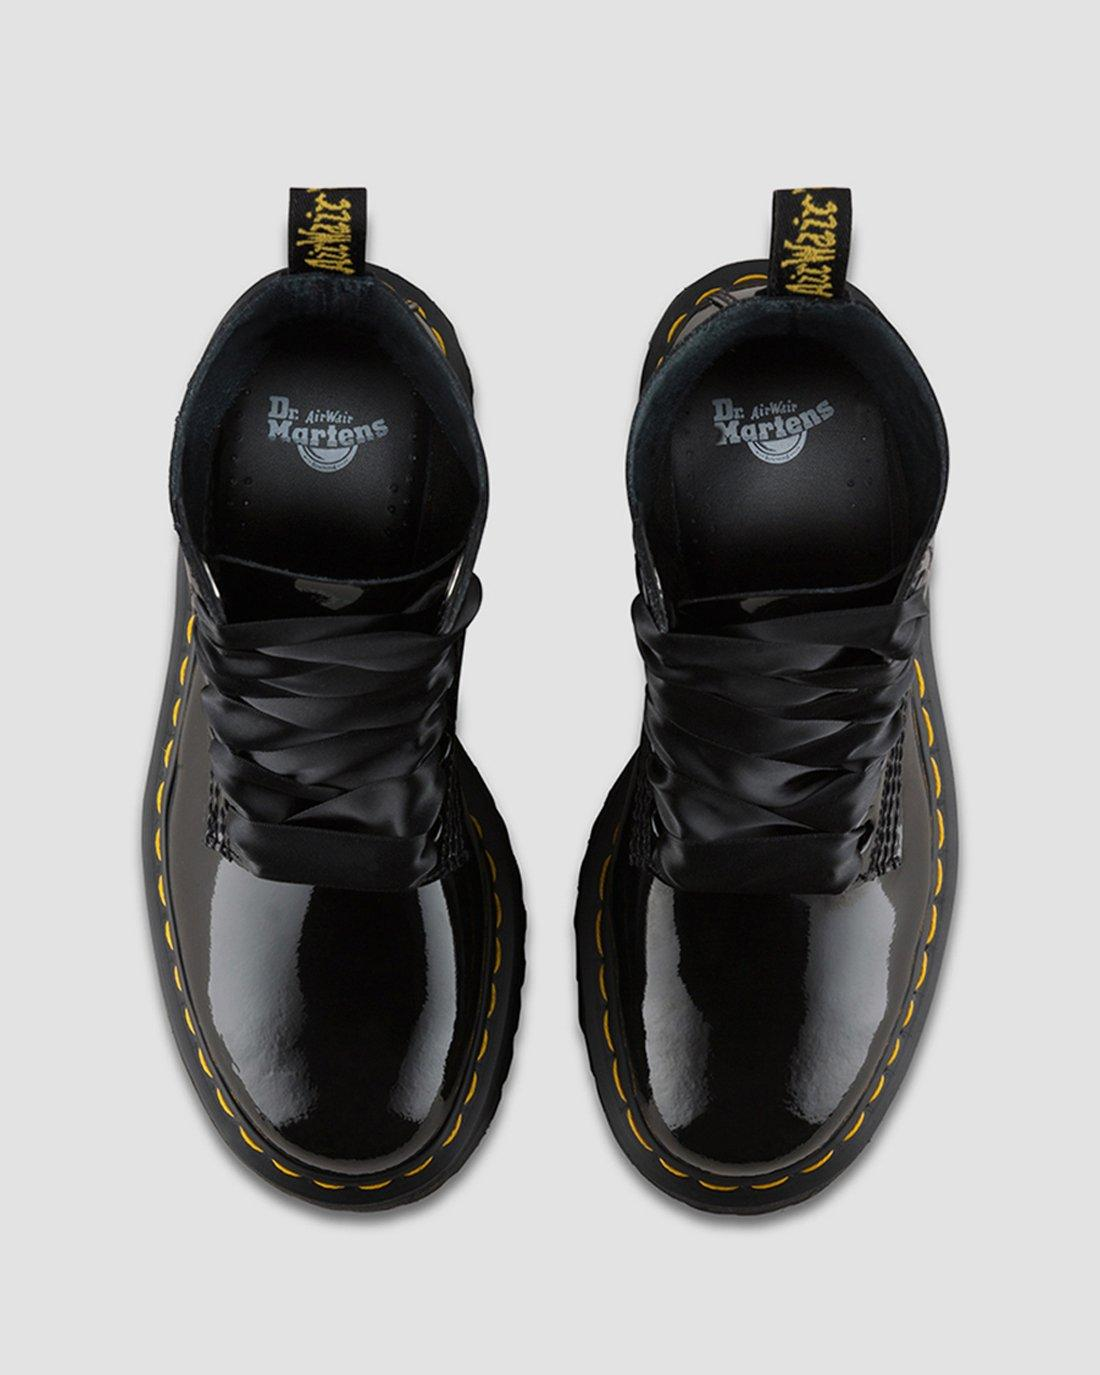 MOLLY PATENT | Dr. Martens